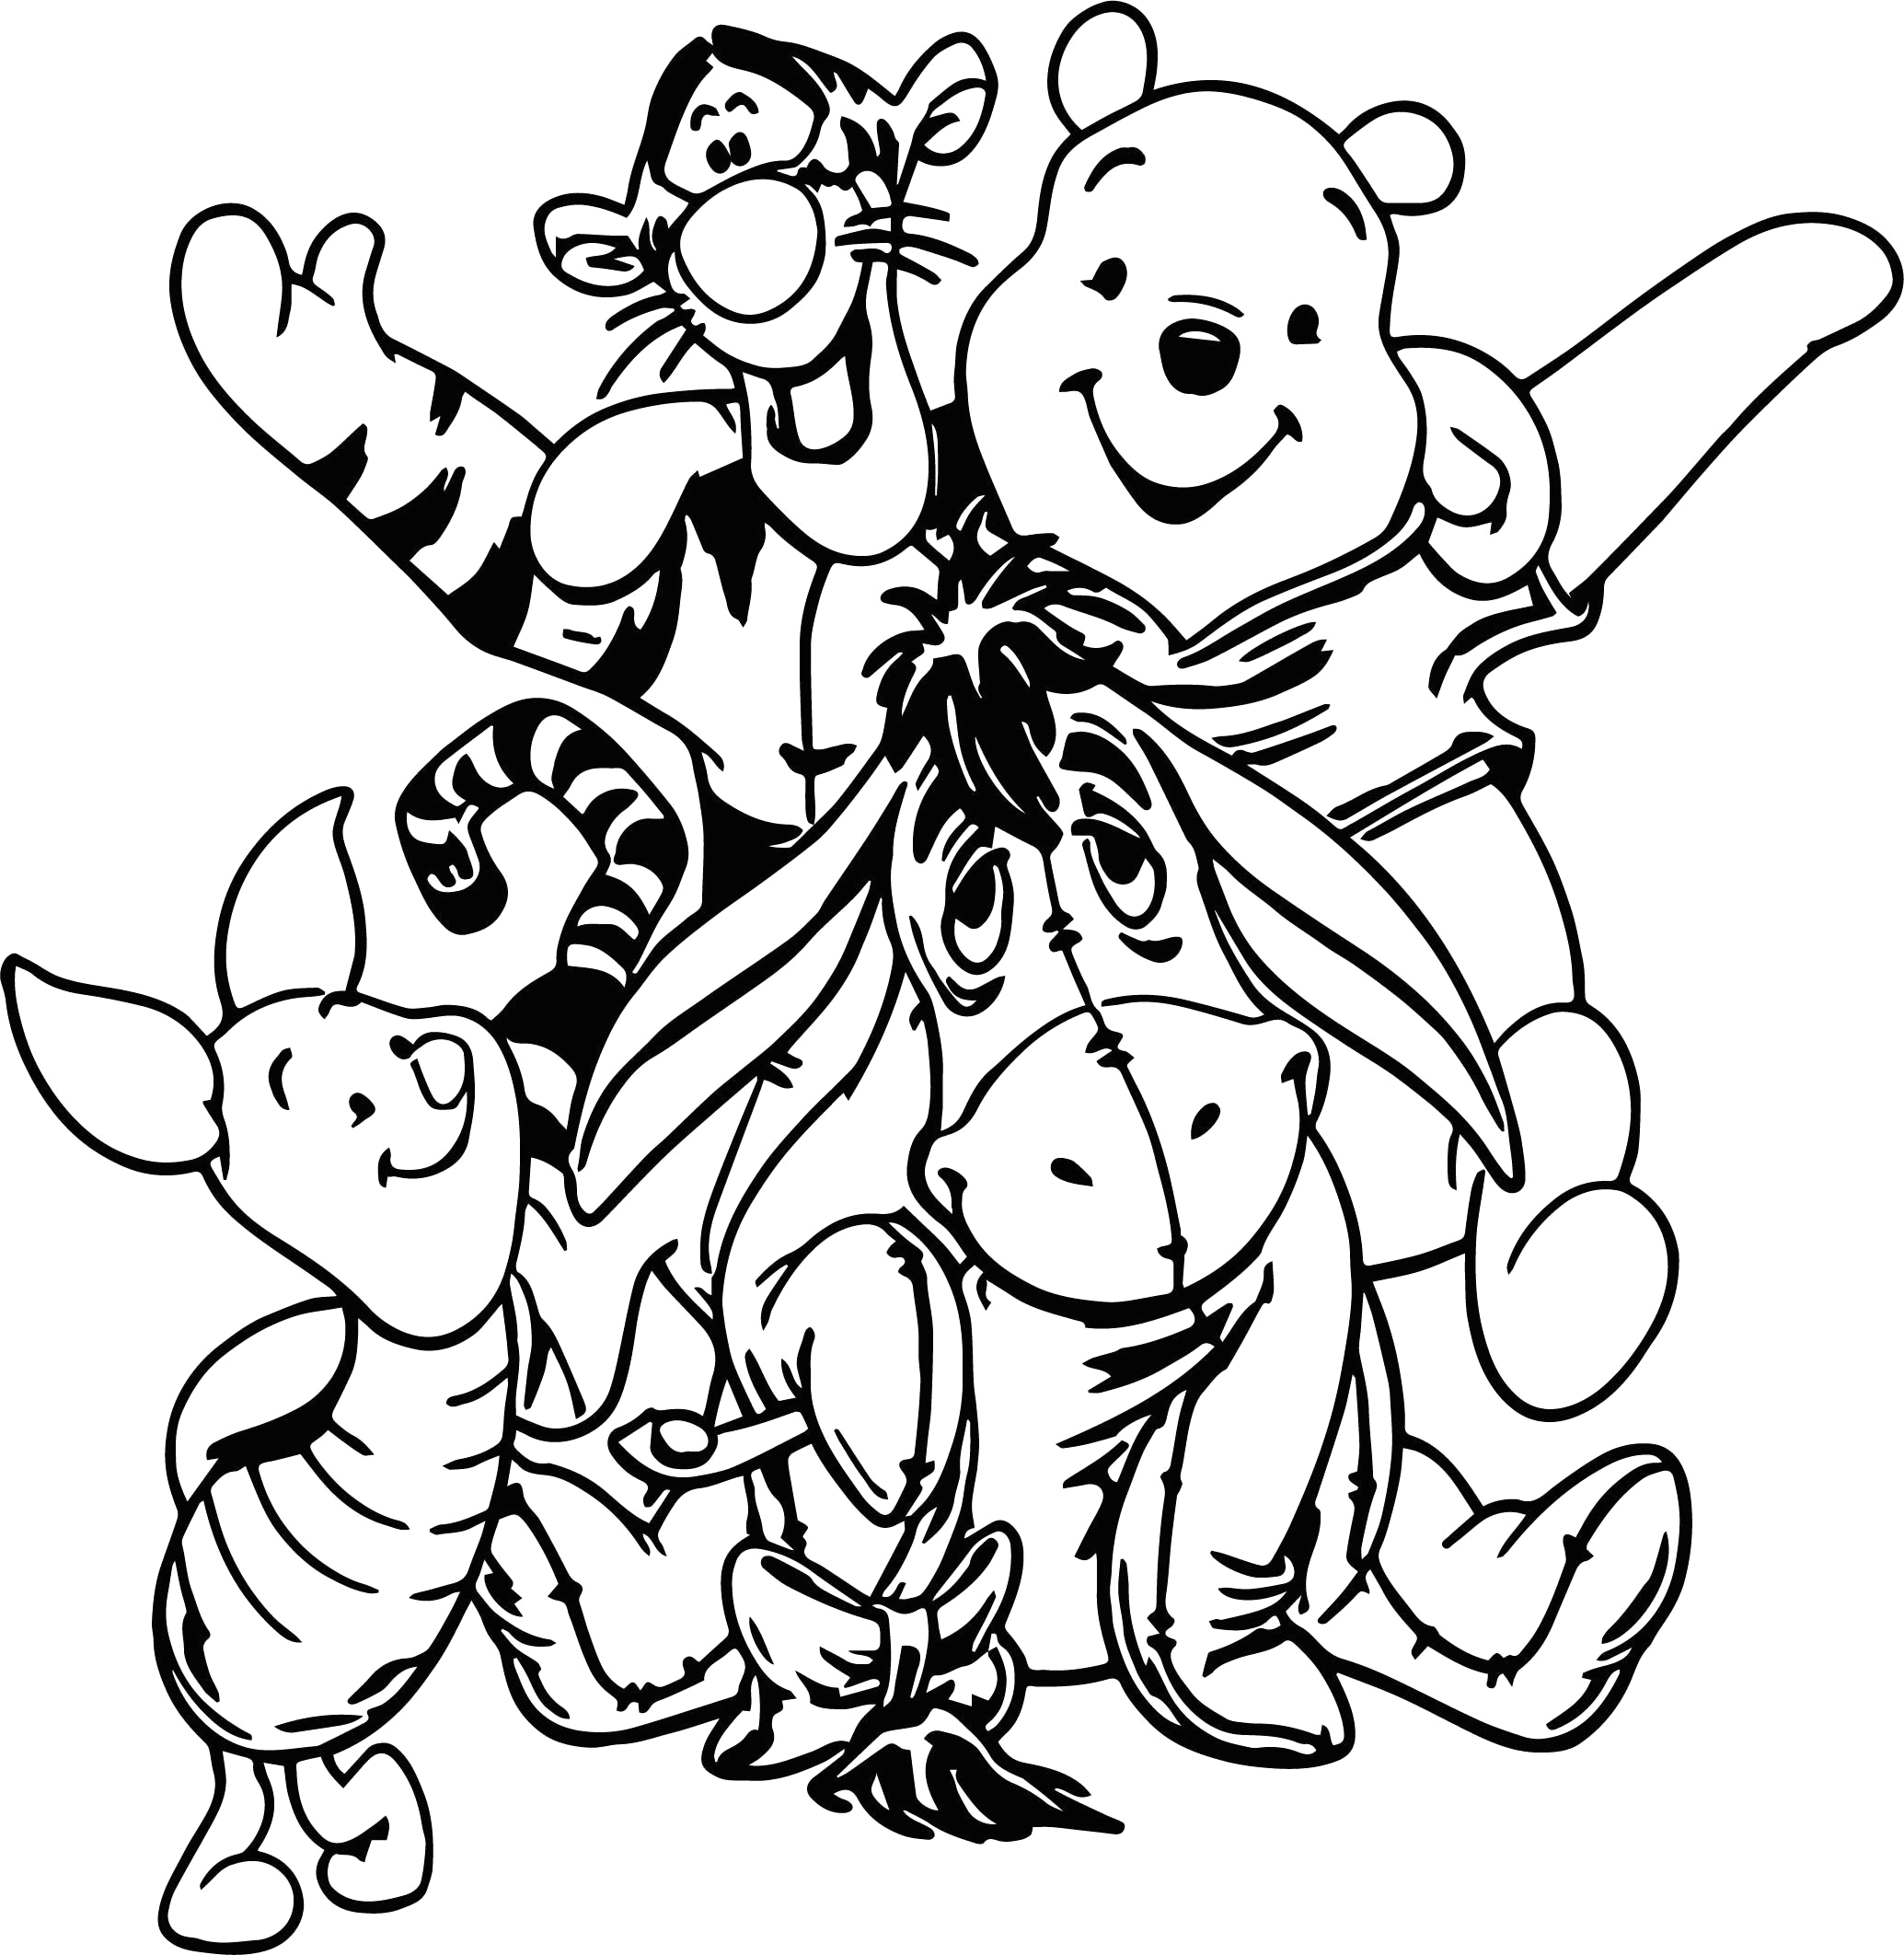 Coloring Pages Of Pooh Bear and Friends Cool Winnie the Pooh All Friends Coloring Page